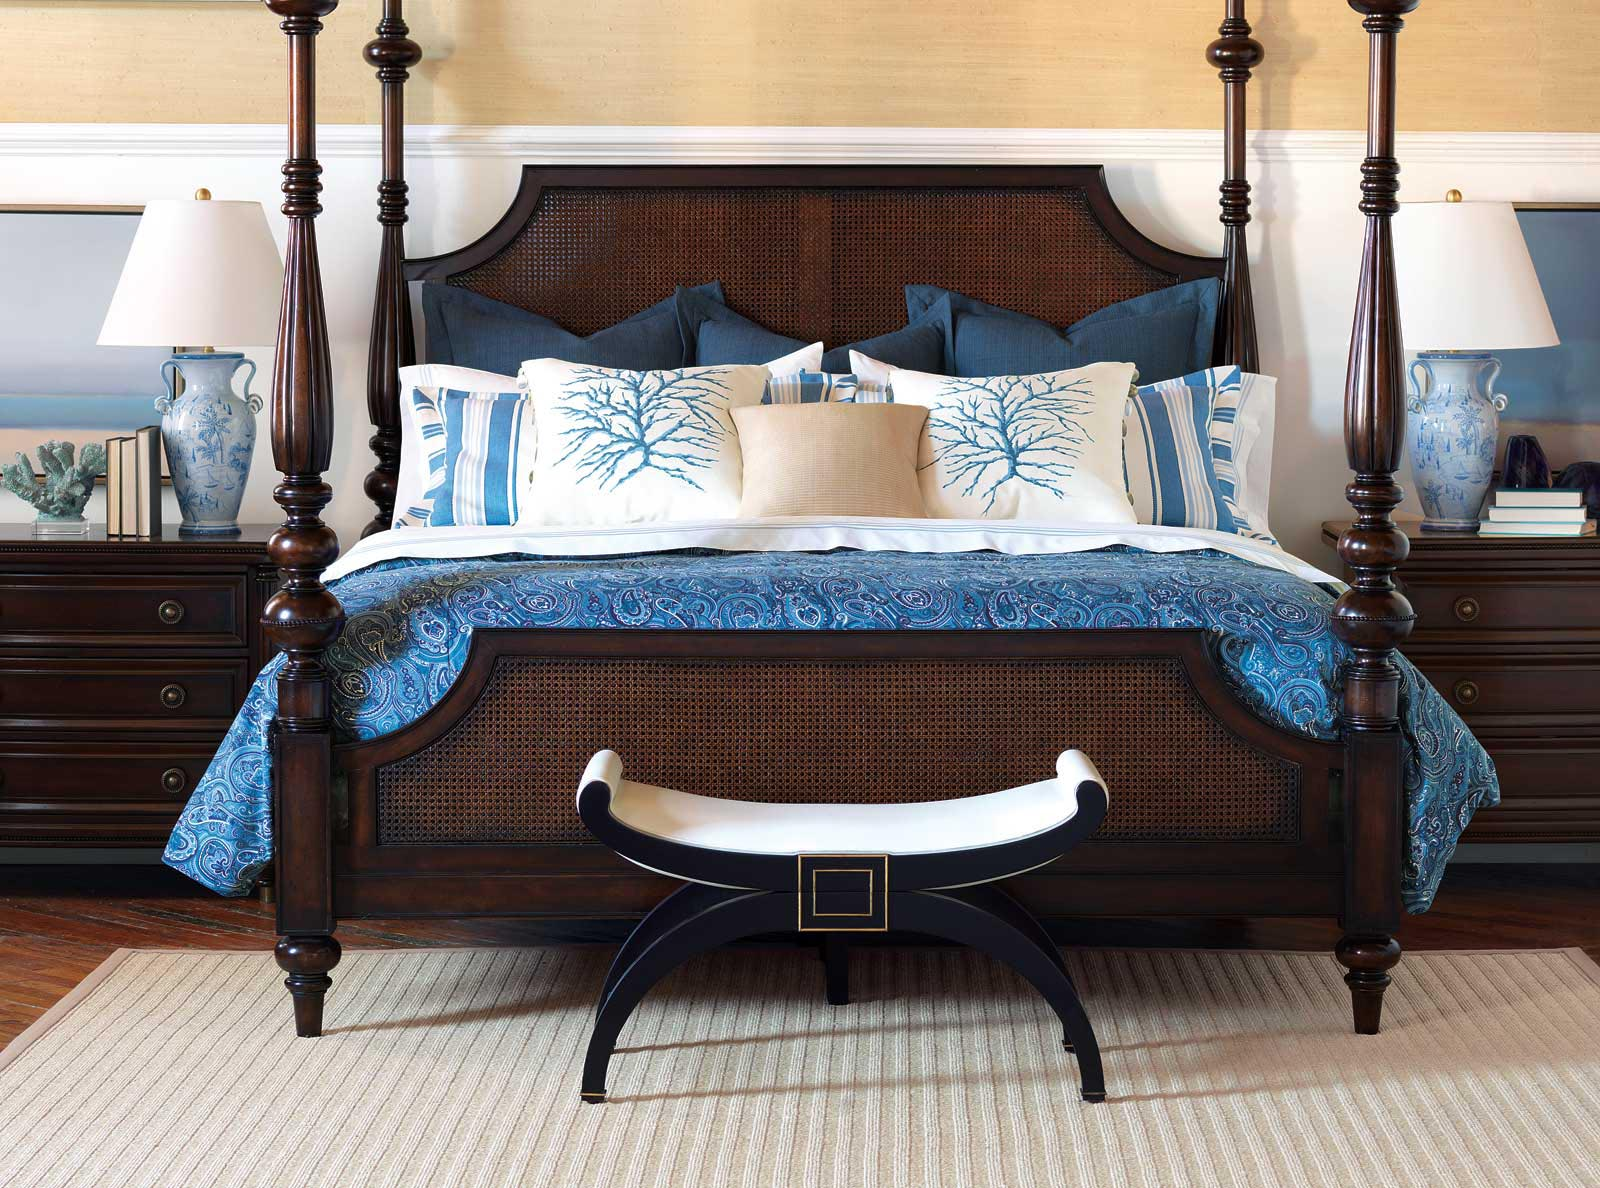 Nautical bedroom furniture ideas homesfeed for Bedroom ideas with furniture